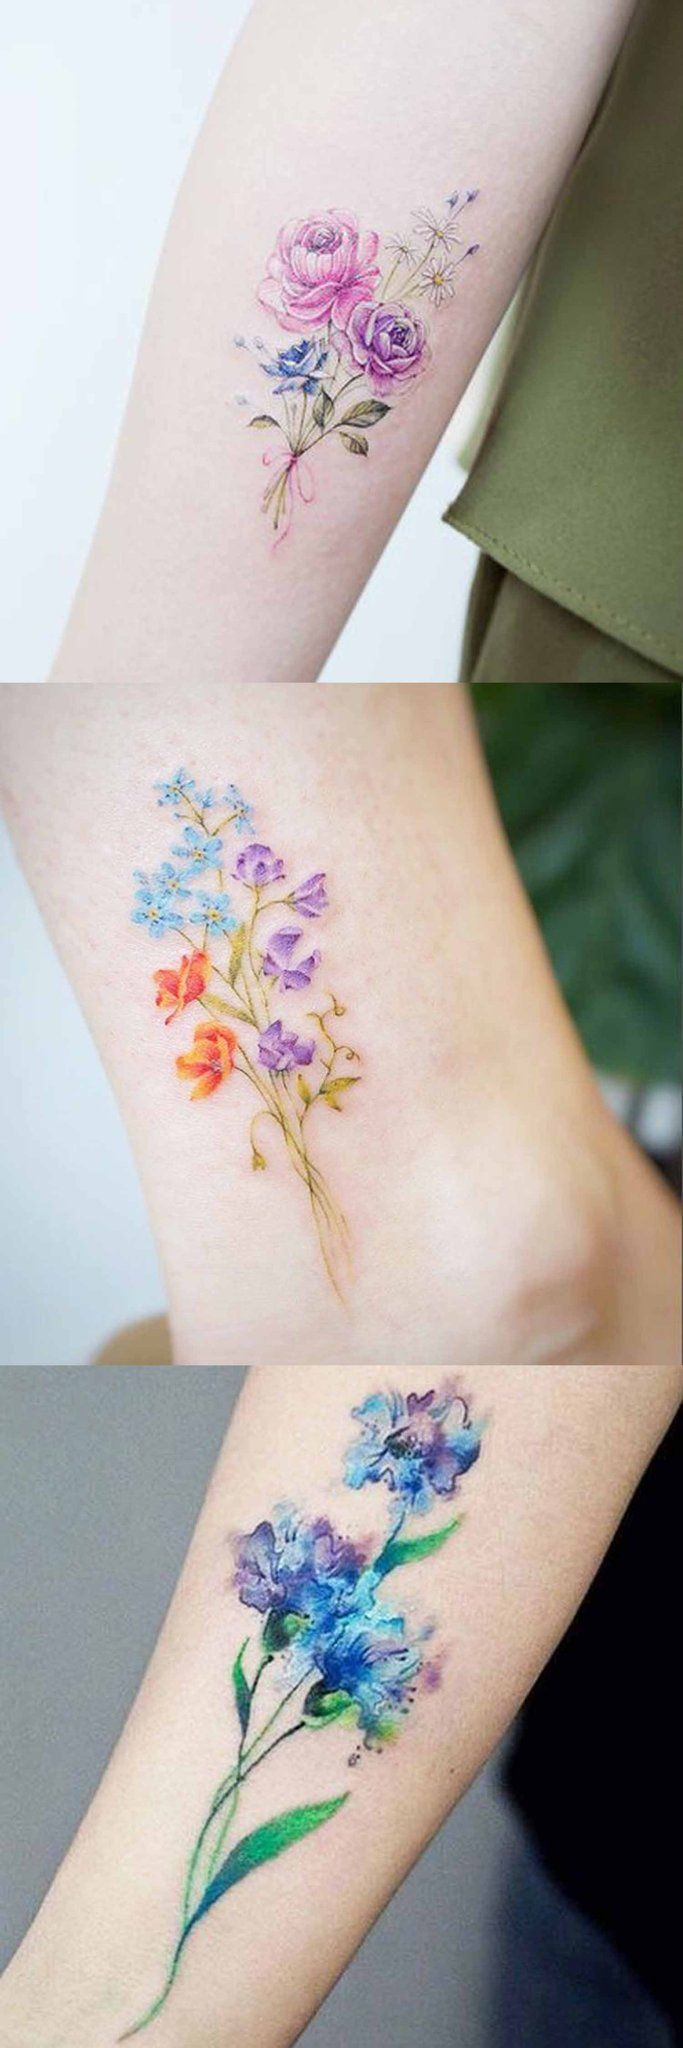 Flower Wrist Giadeolatattoo Designs: Small Tiny Floral Flower Tattoo Ideas At MyBodiArt.com